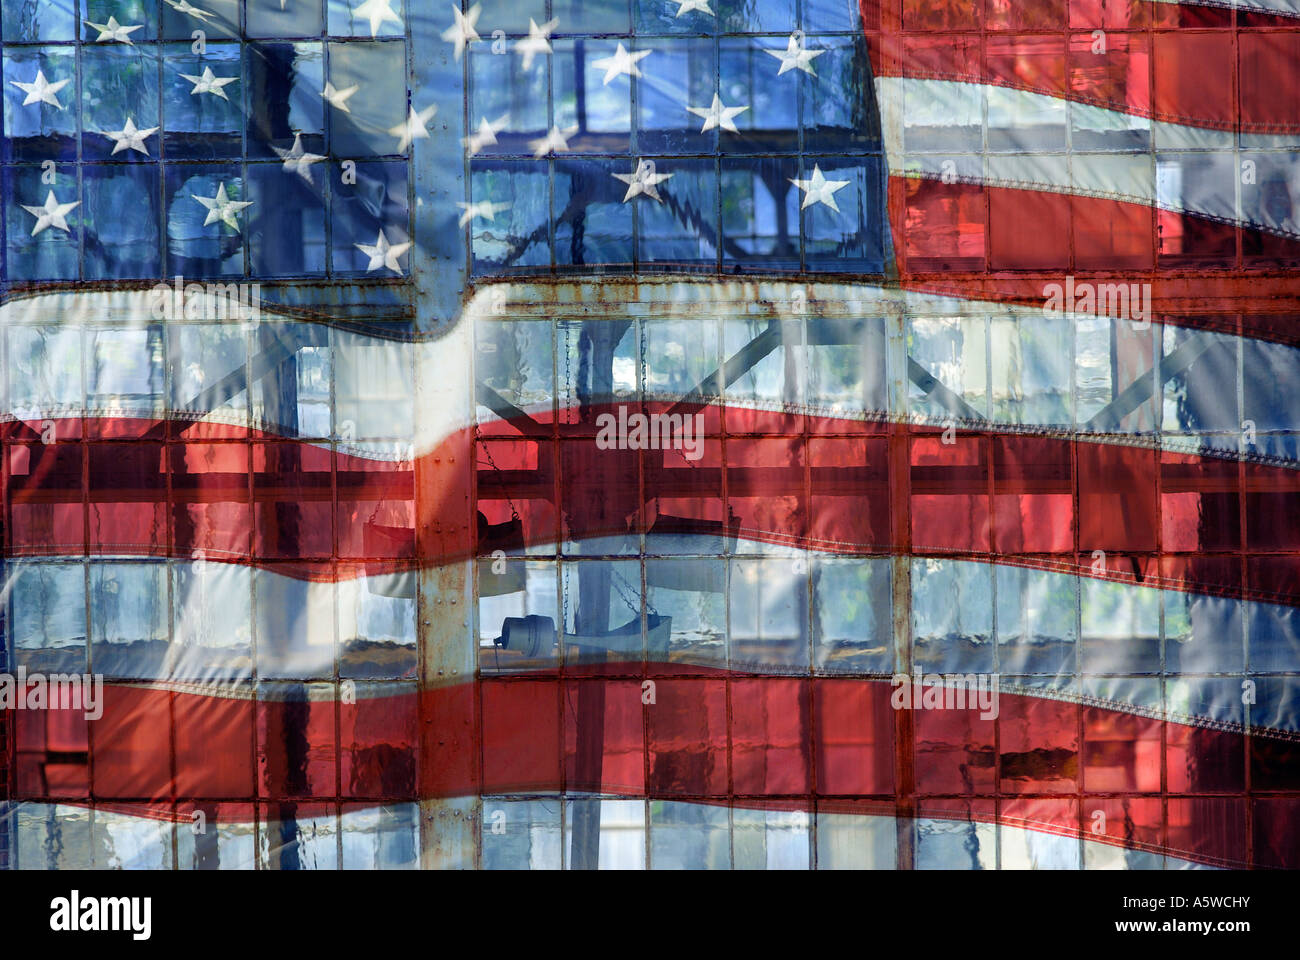 A Flag Collage Illustration layered with old Industrial windows - Stock Image